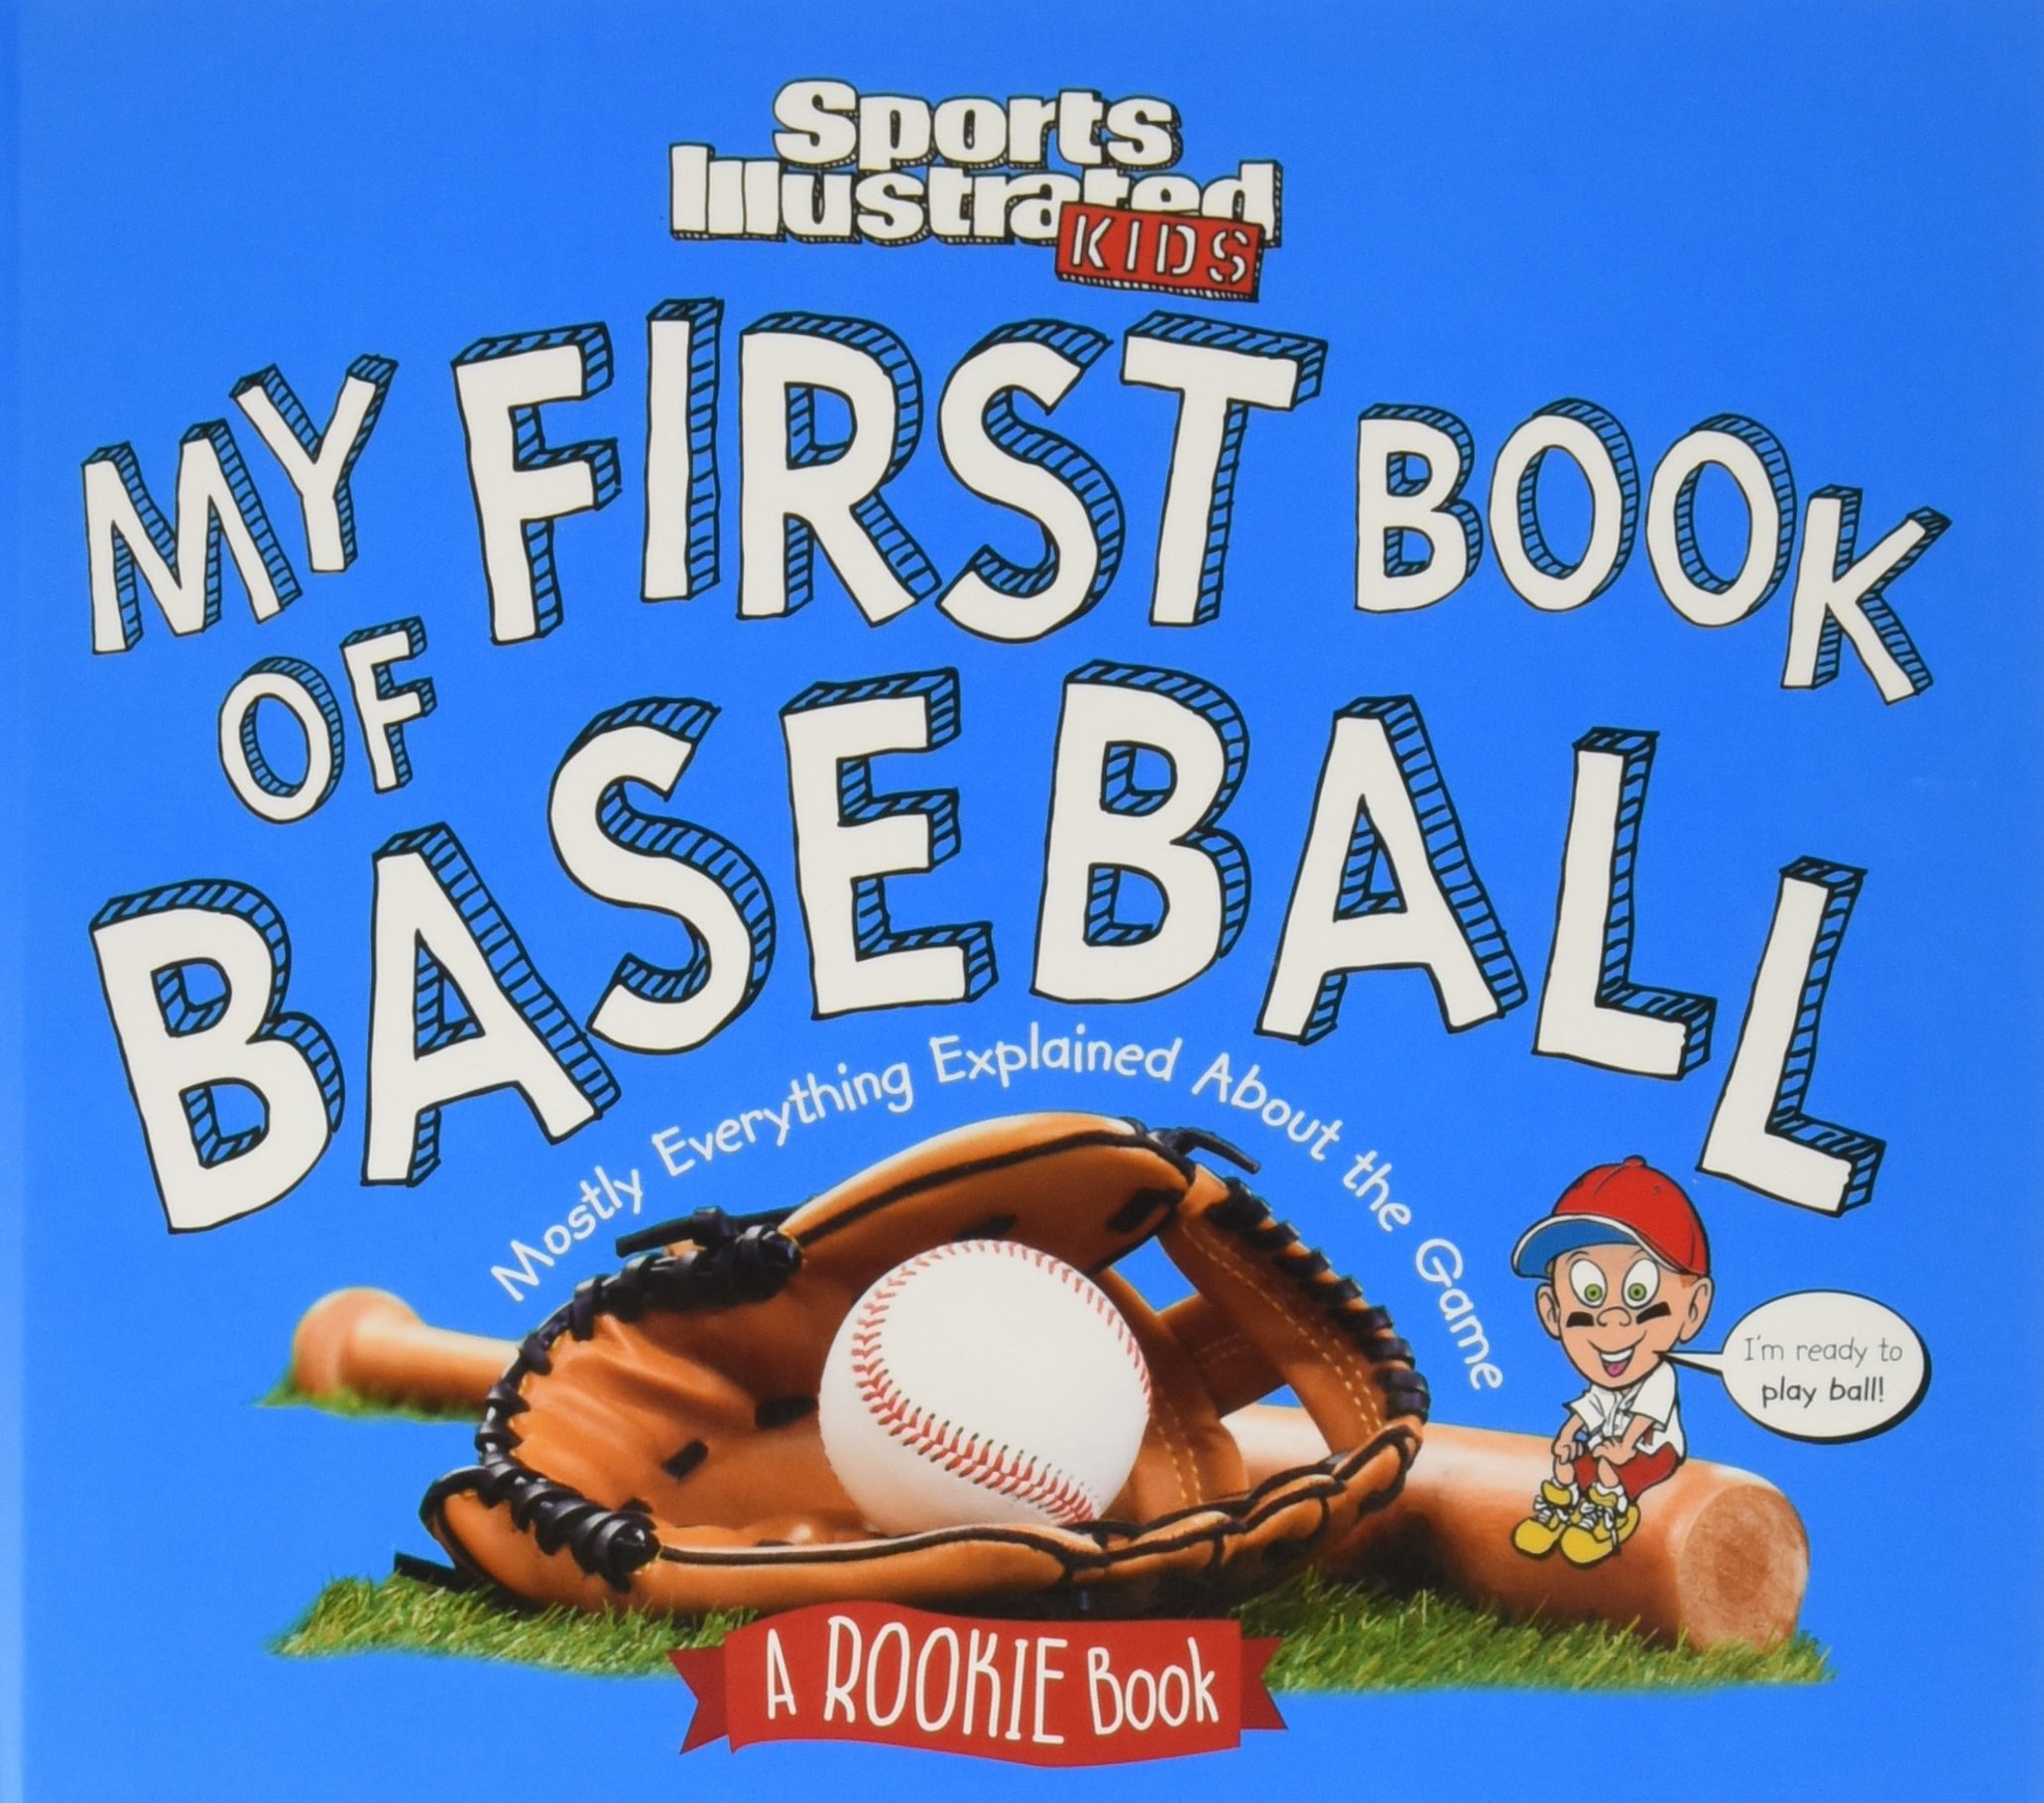 My First Book of Baseball: A Rookie Book (A Sports Illustrated Kids Book) by Sports Illustrated Books